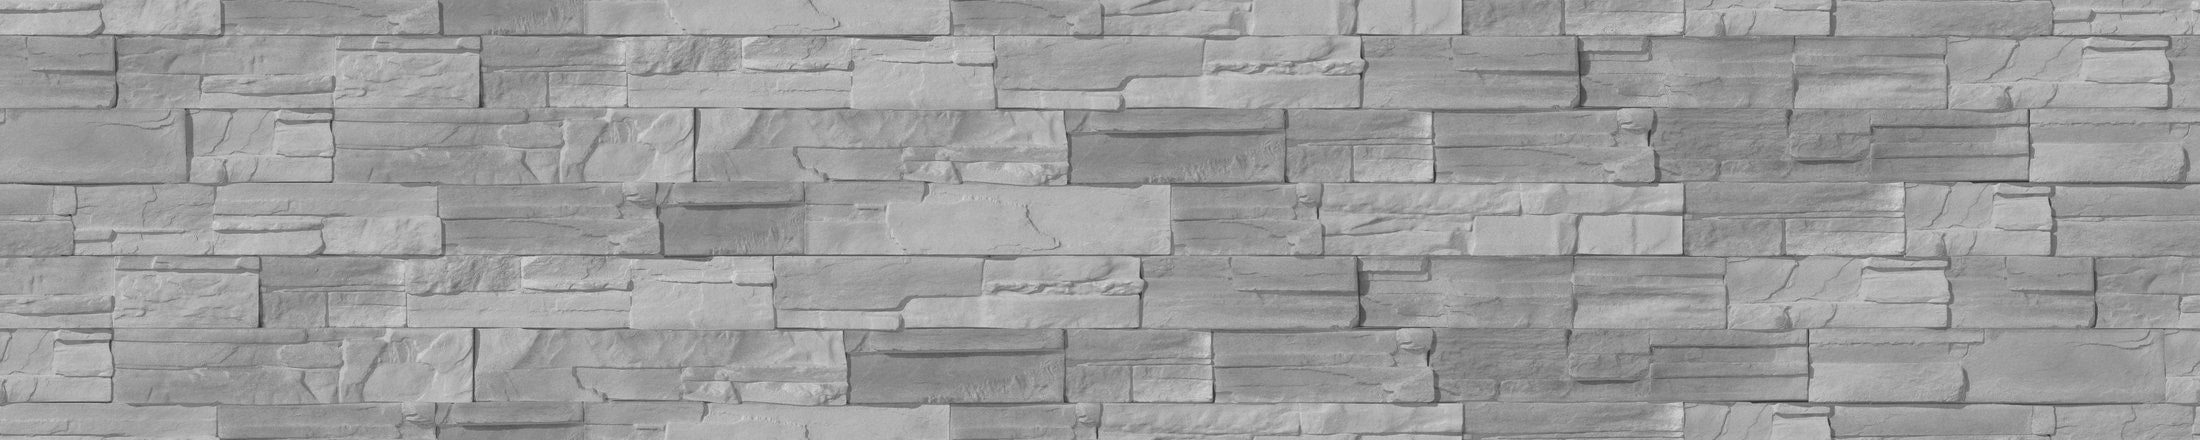 Icy Santa - Dry Stack Ledgestone cheap stone veneer clearance - Discount Stones wholesale stone veneer, cheap brick veneer, cultured stone for sale